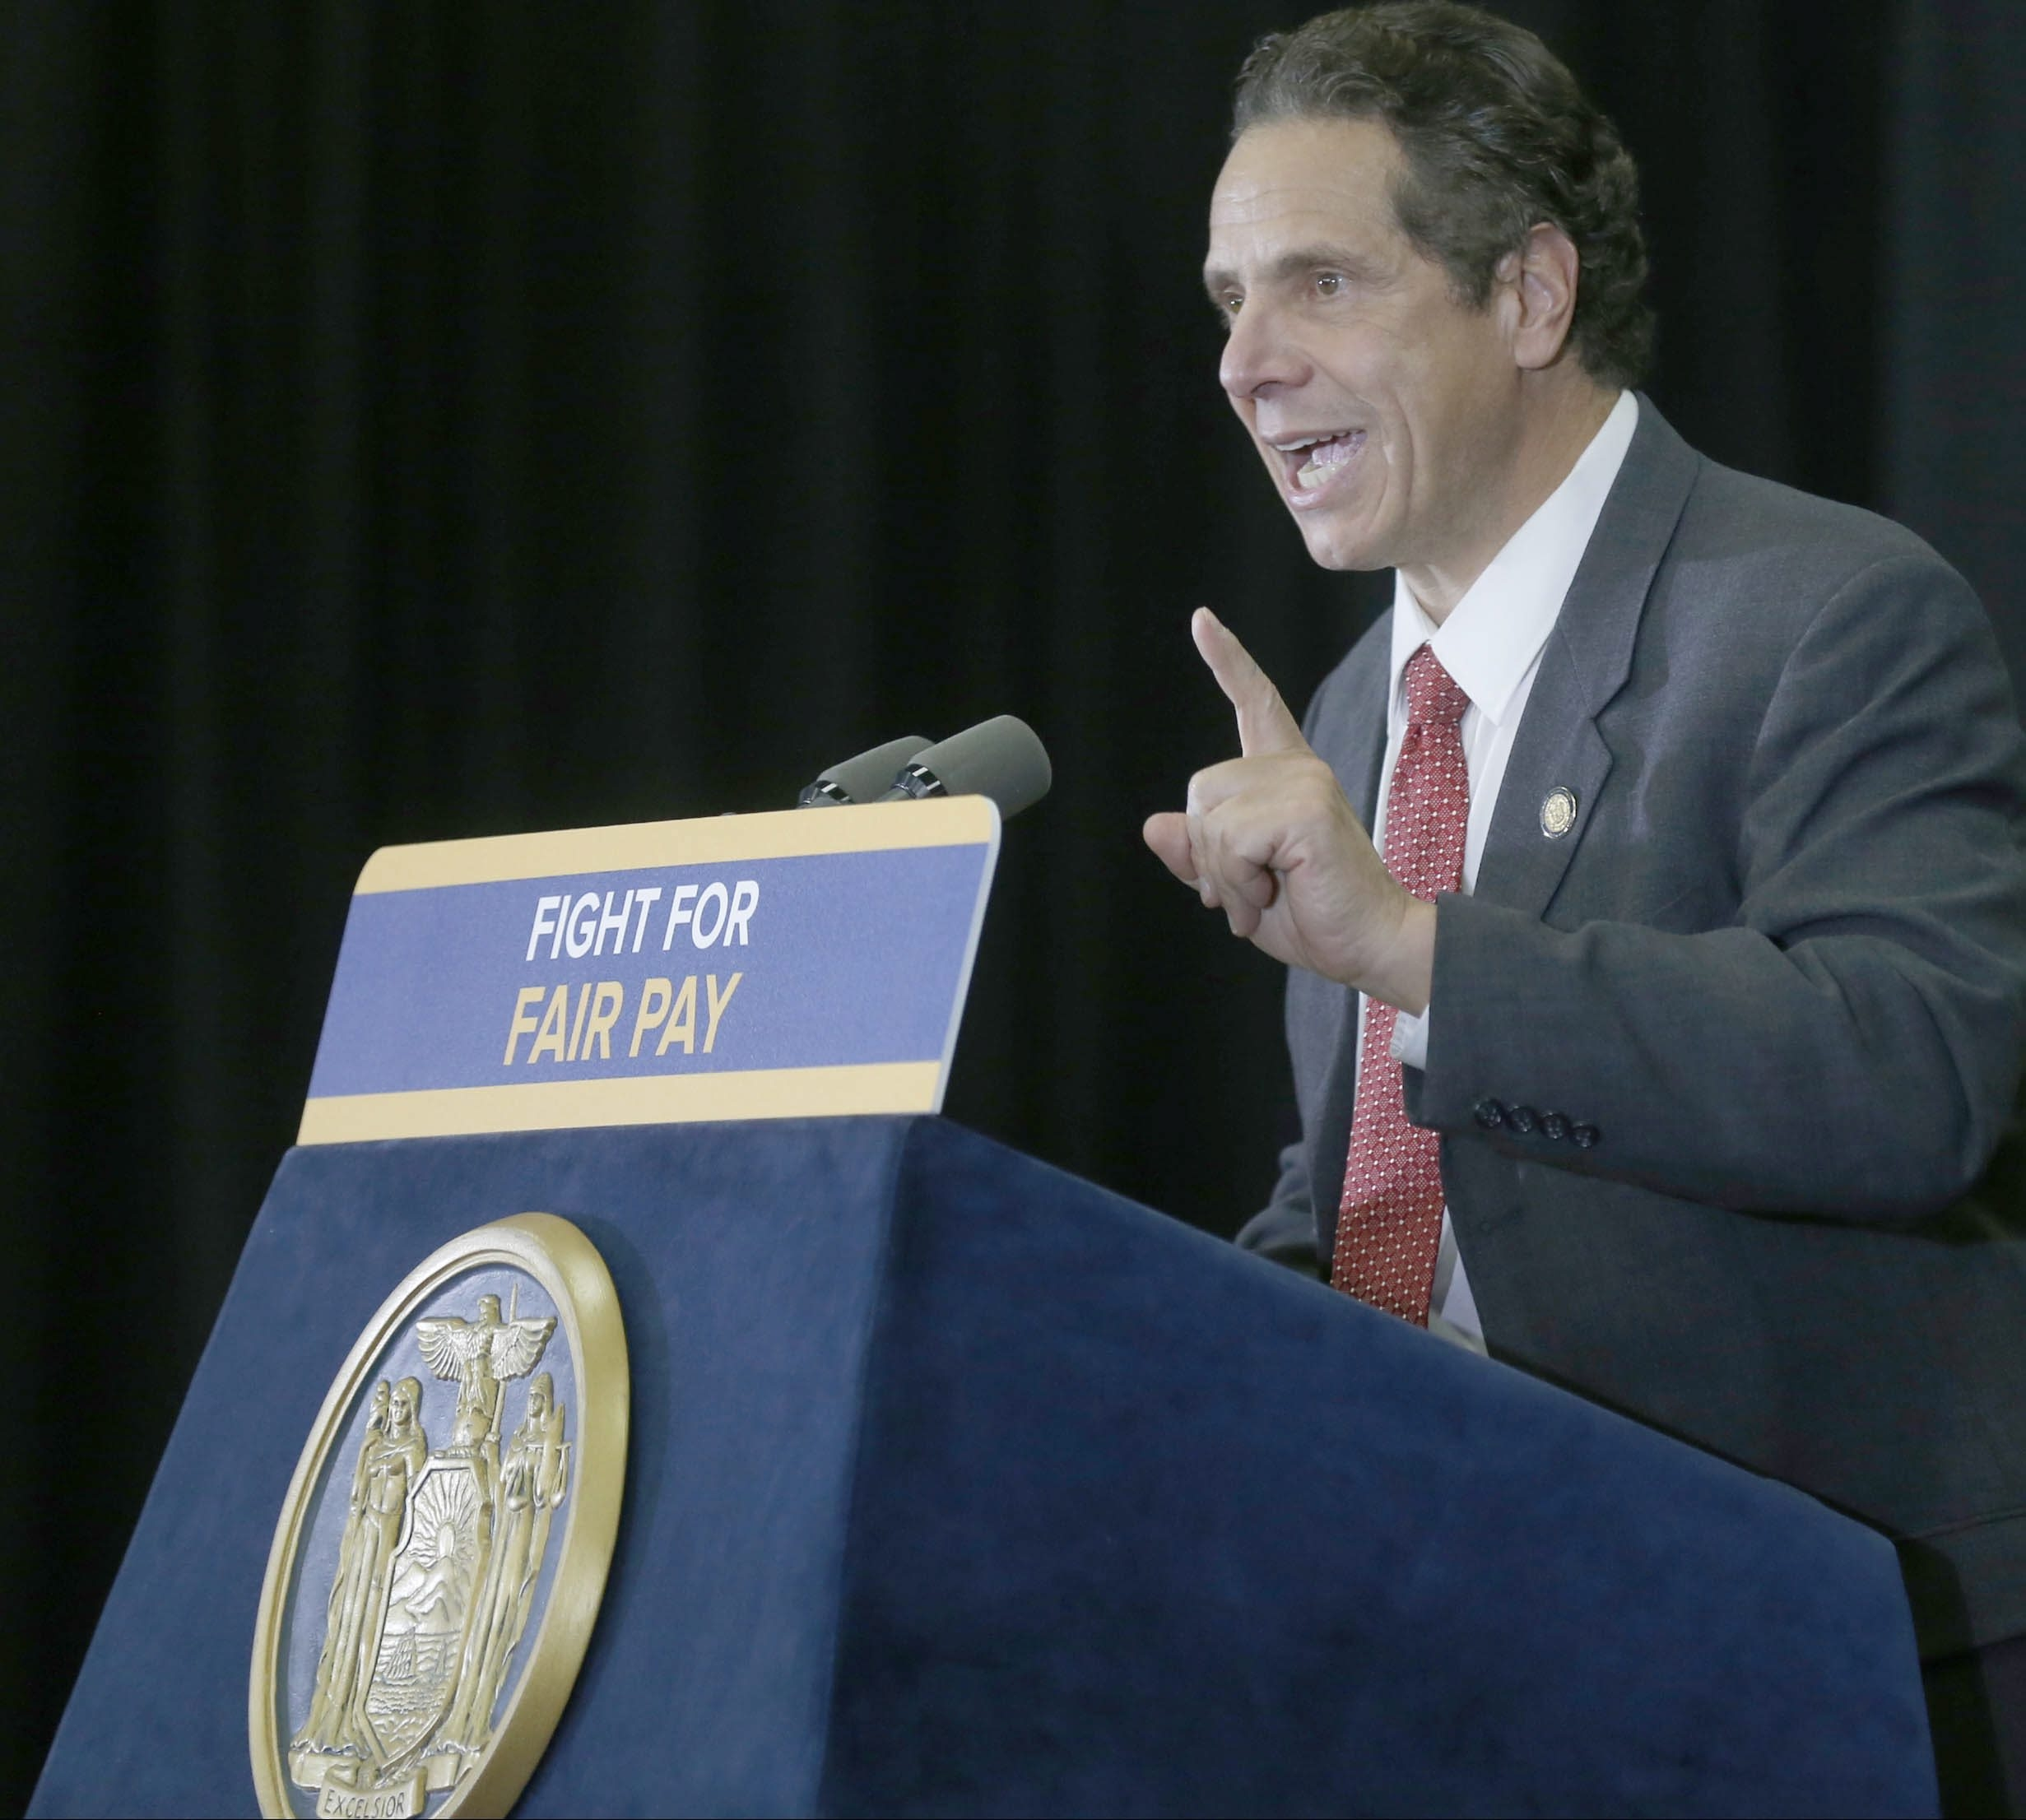 Gov. Andrew Cuomo is pushing for a gradual increase to $15 an hour in New York's minimum wage. The Senate, which says it could be persuaded to go along, must ensure that businesses can sustain those costs.